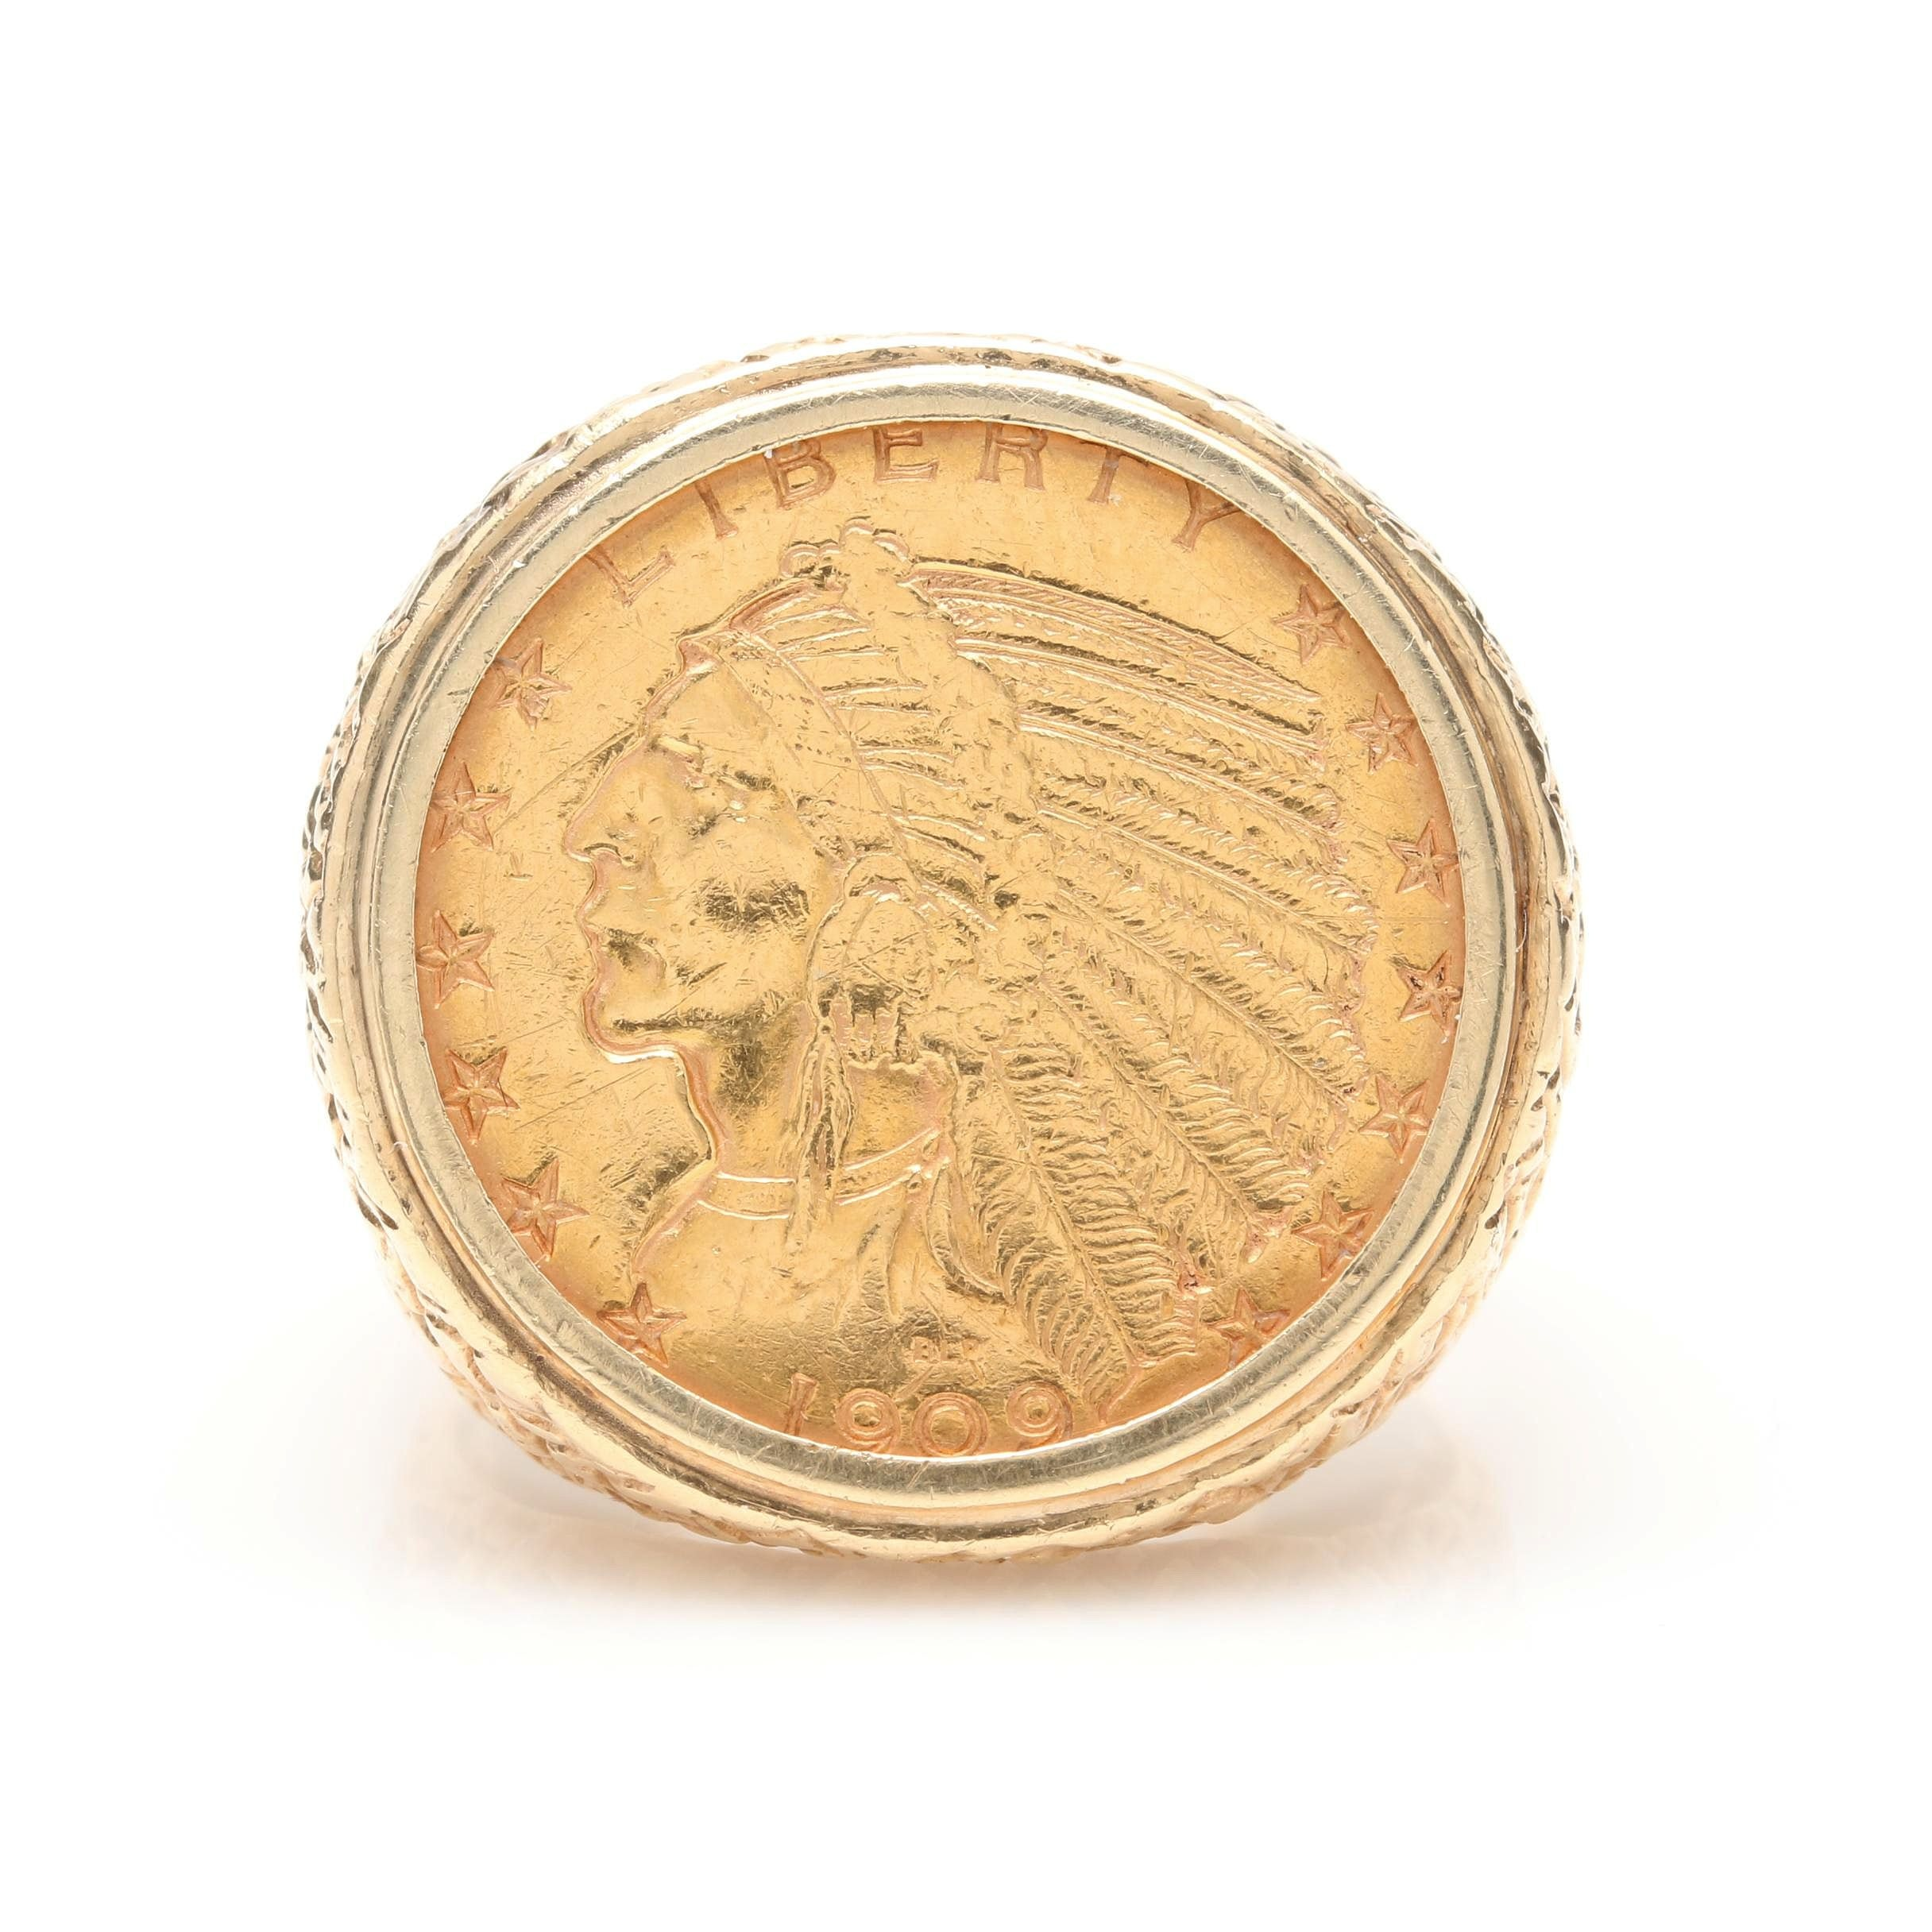 14K Yellow Gold Ring with 1909 Indian Head $5 Gold Half Eagle Coin